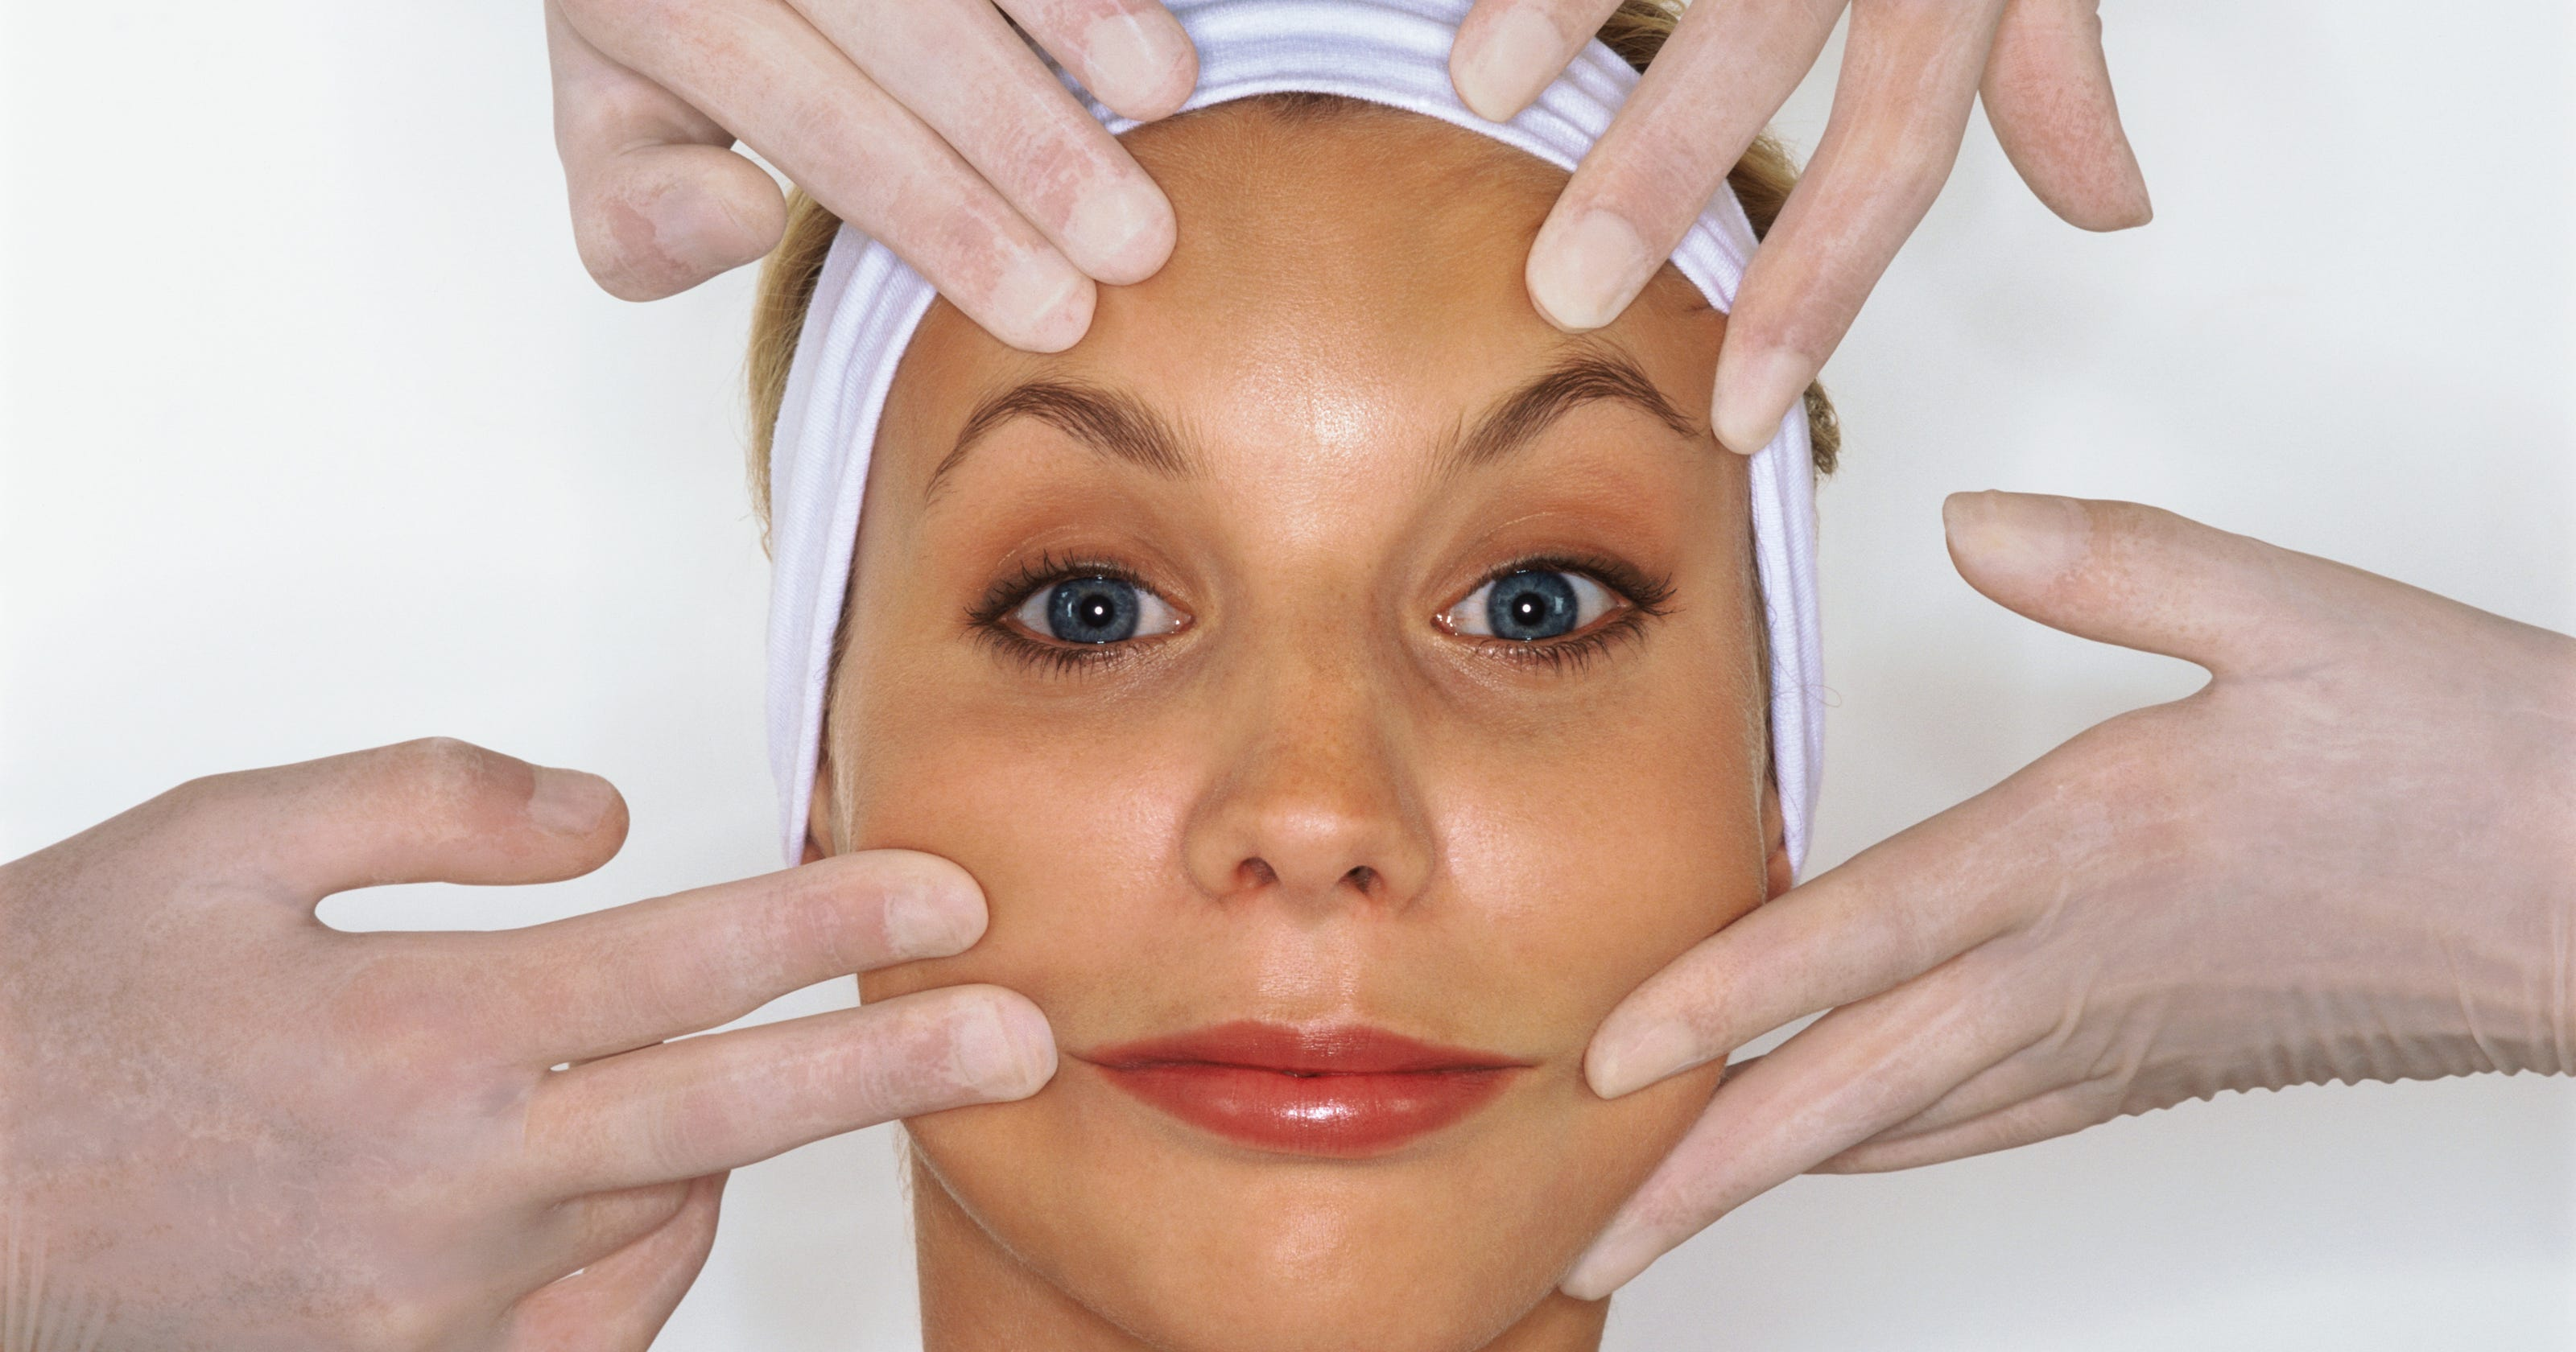 Top countries for plastic surgery? We're number one